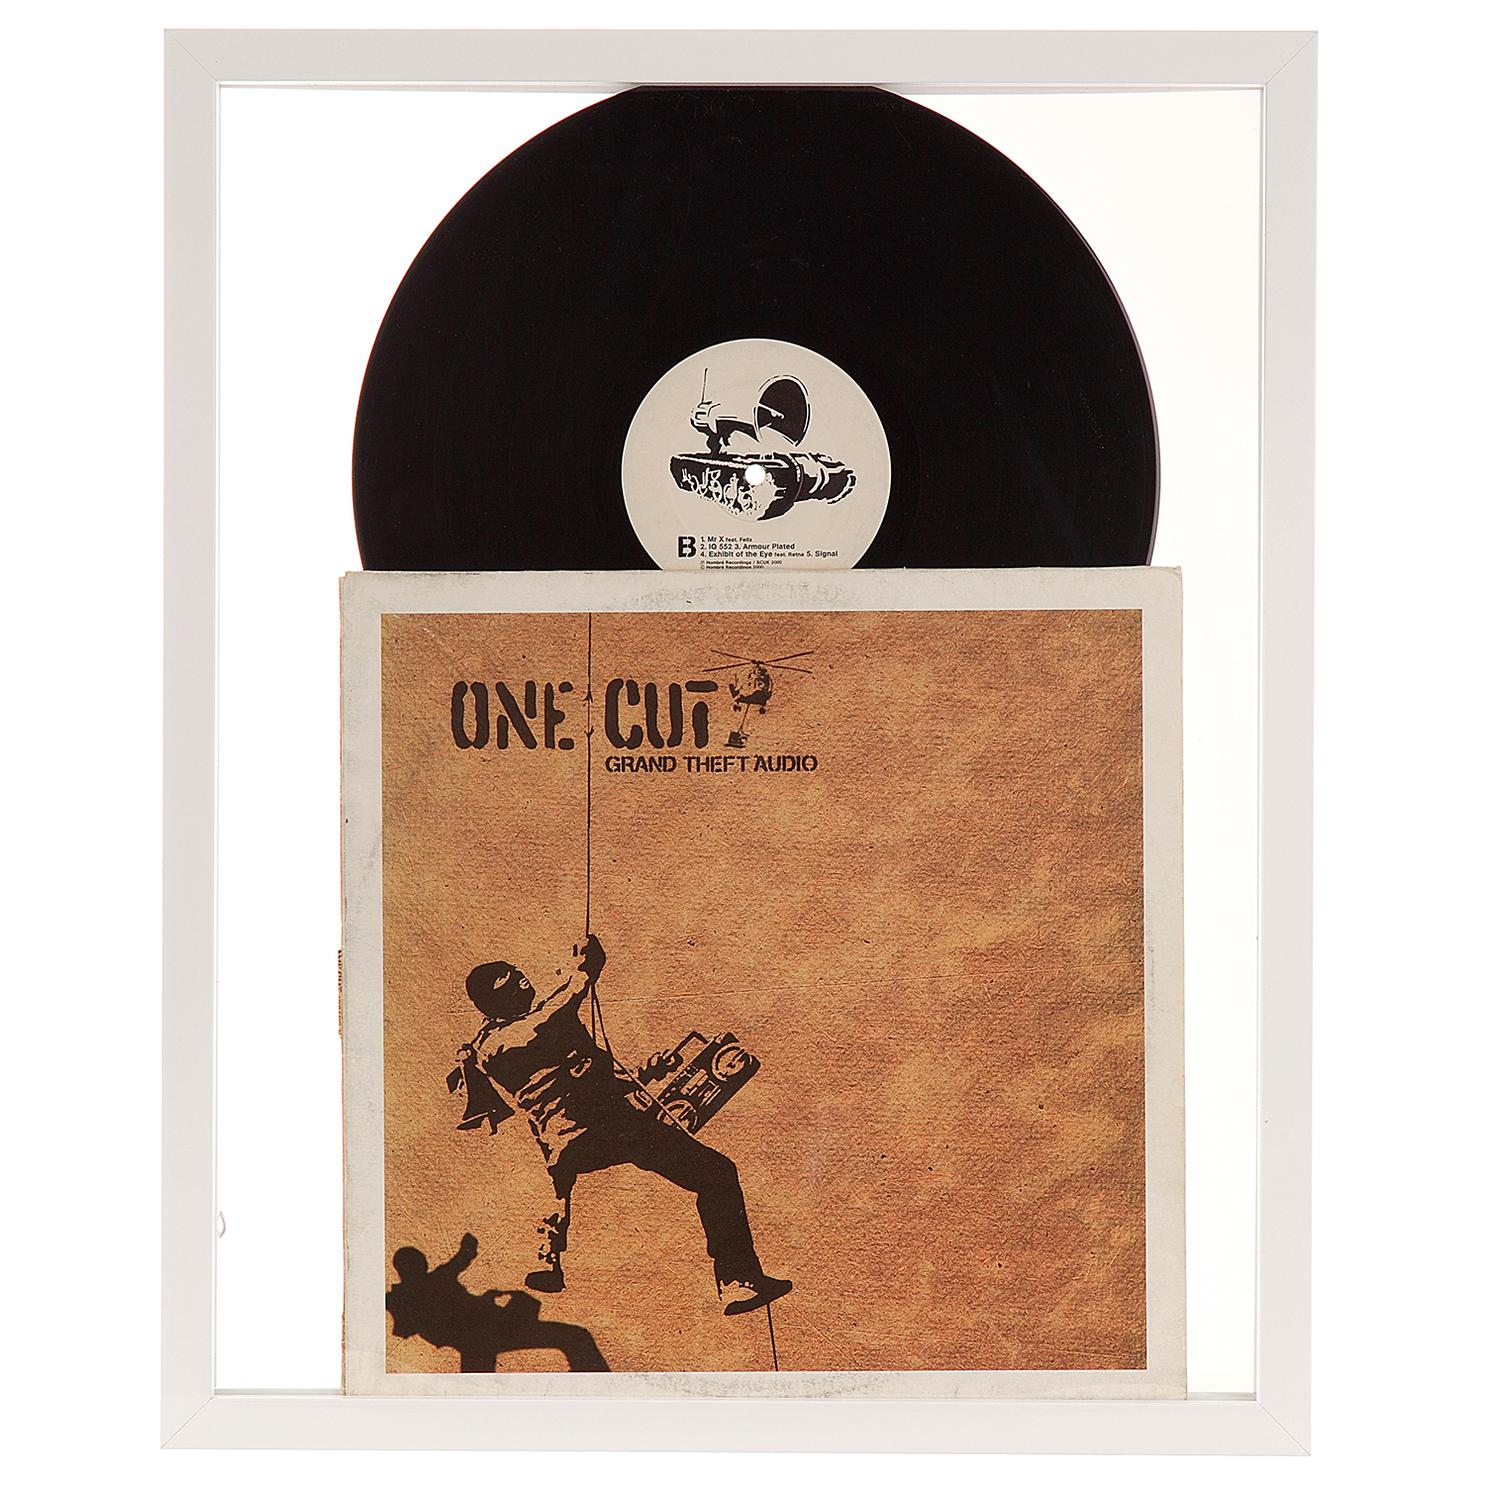 Banksy-One Cut (Grand Theft Audio)-2000